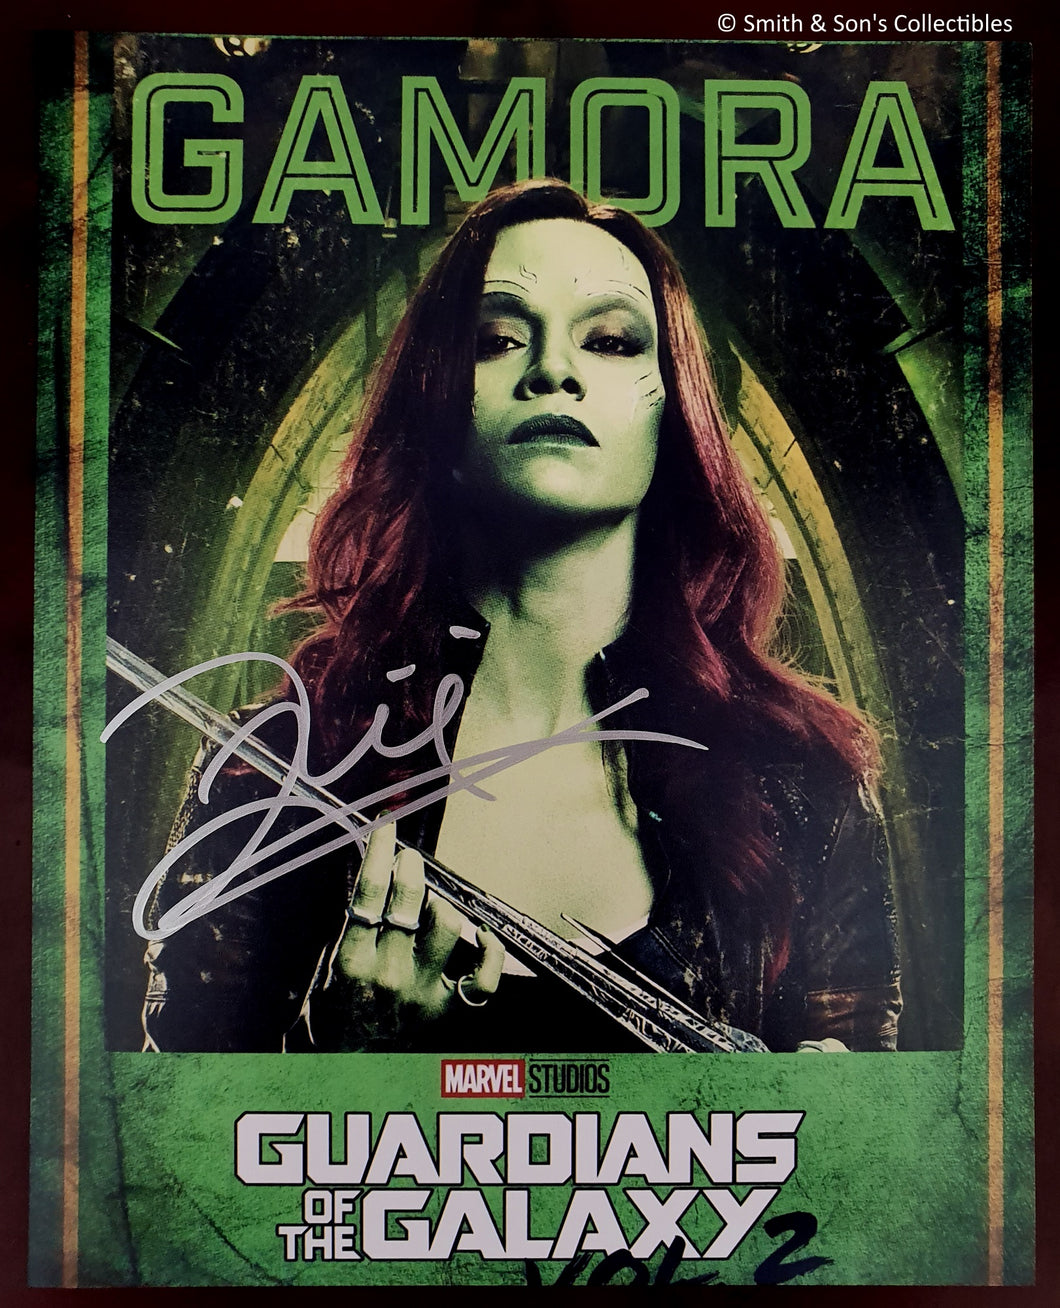 Zoe Saldana Autographed Guardians of the Galaxy Glossy 8x10 Photo COA #ZS69734